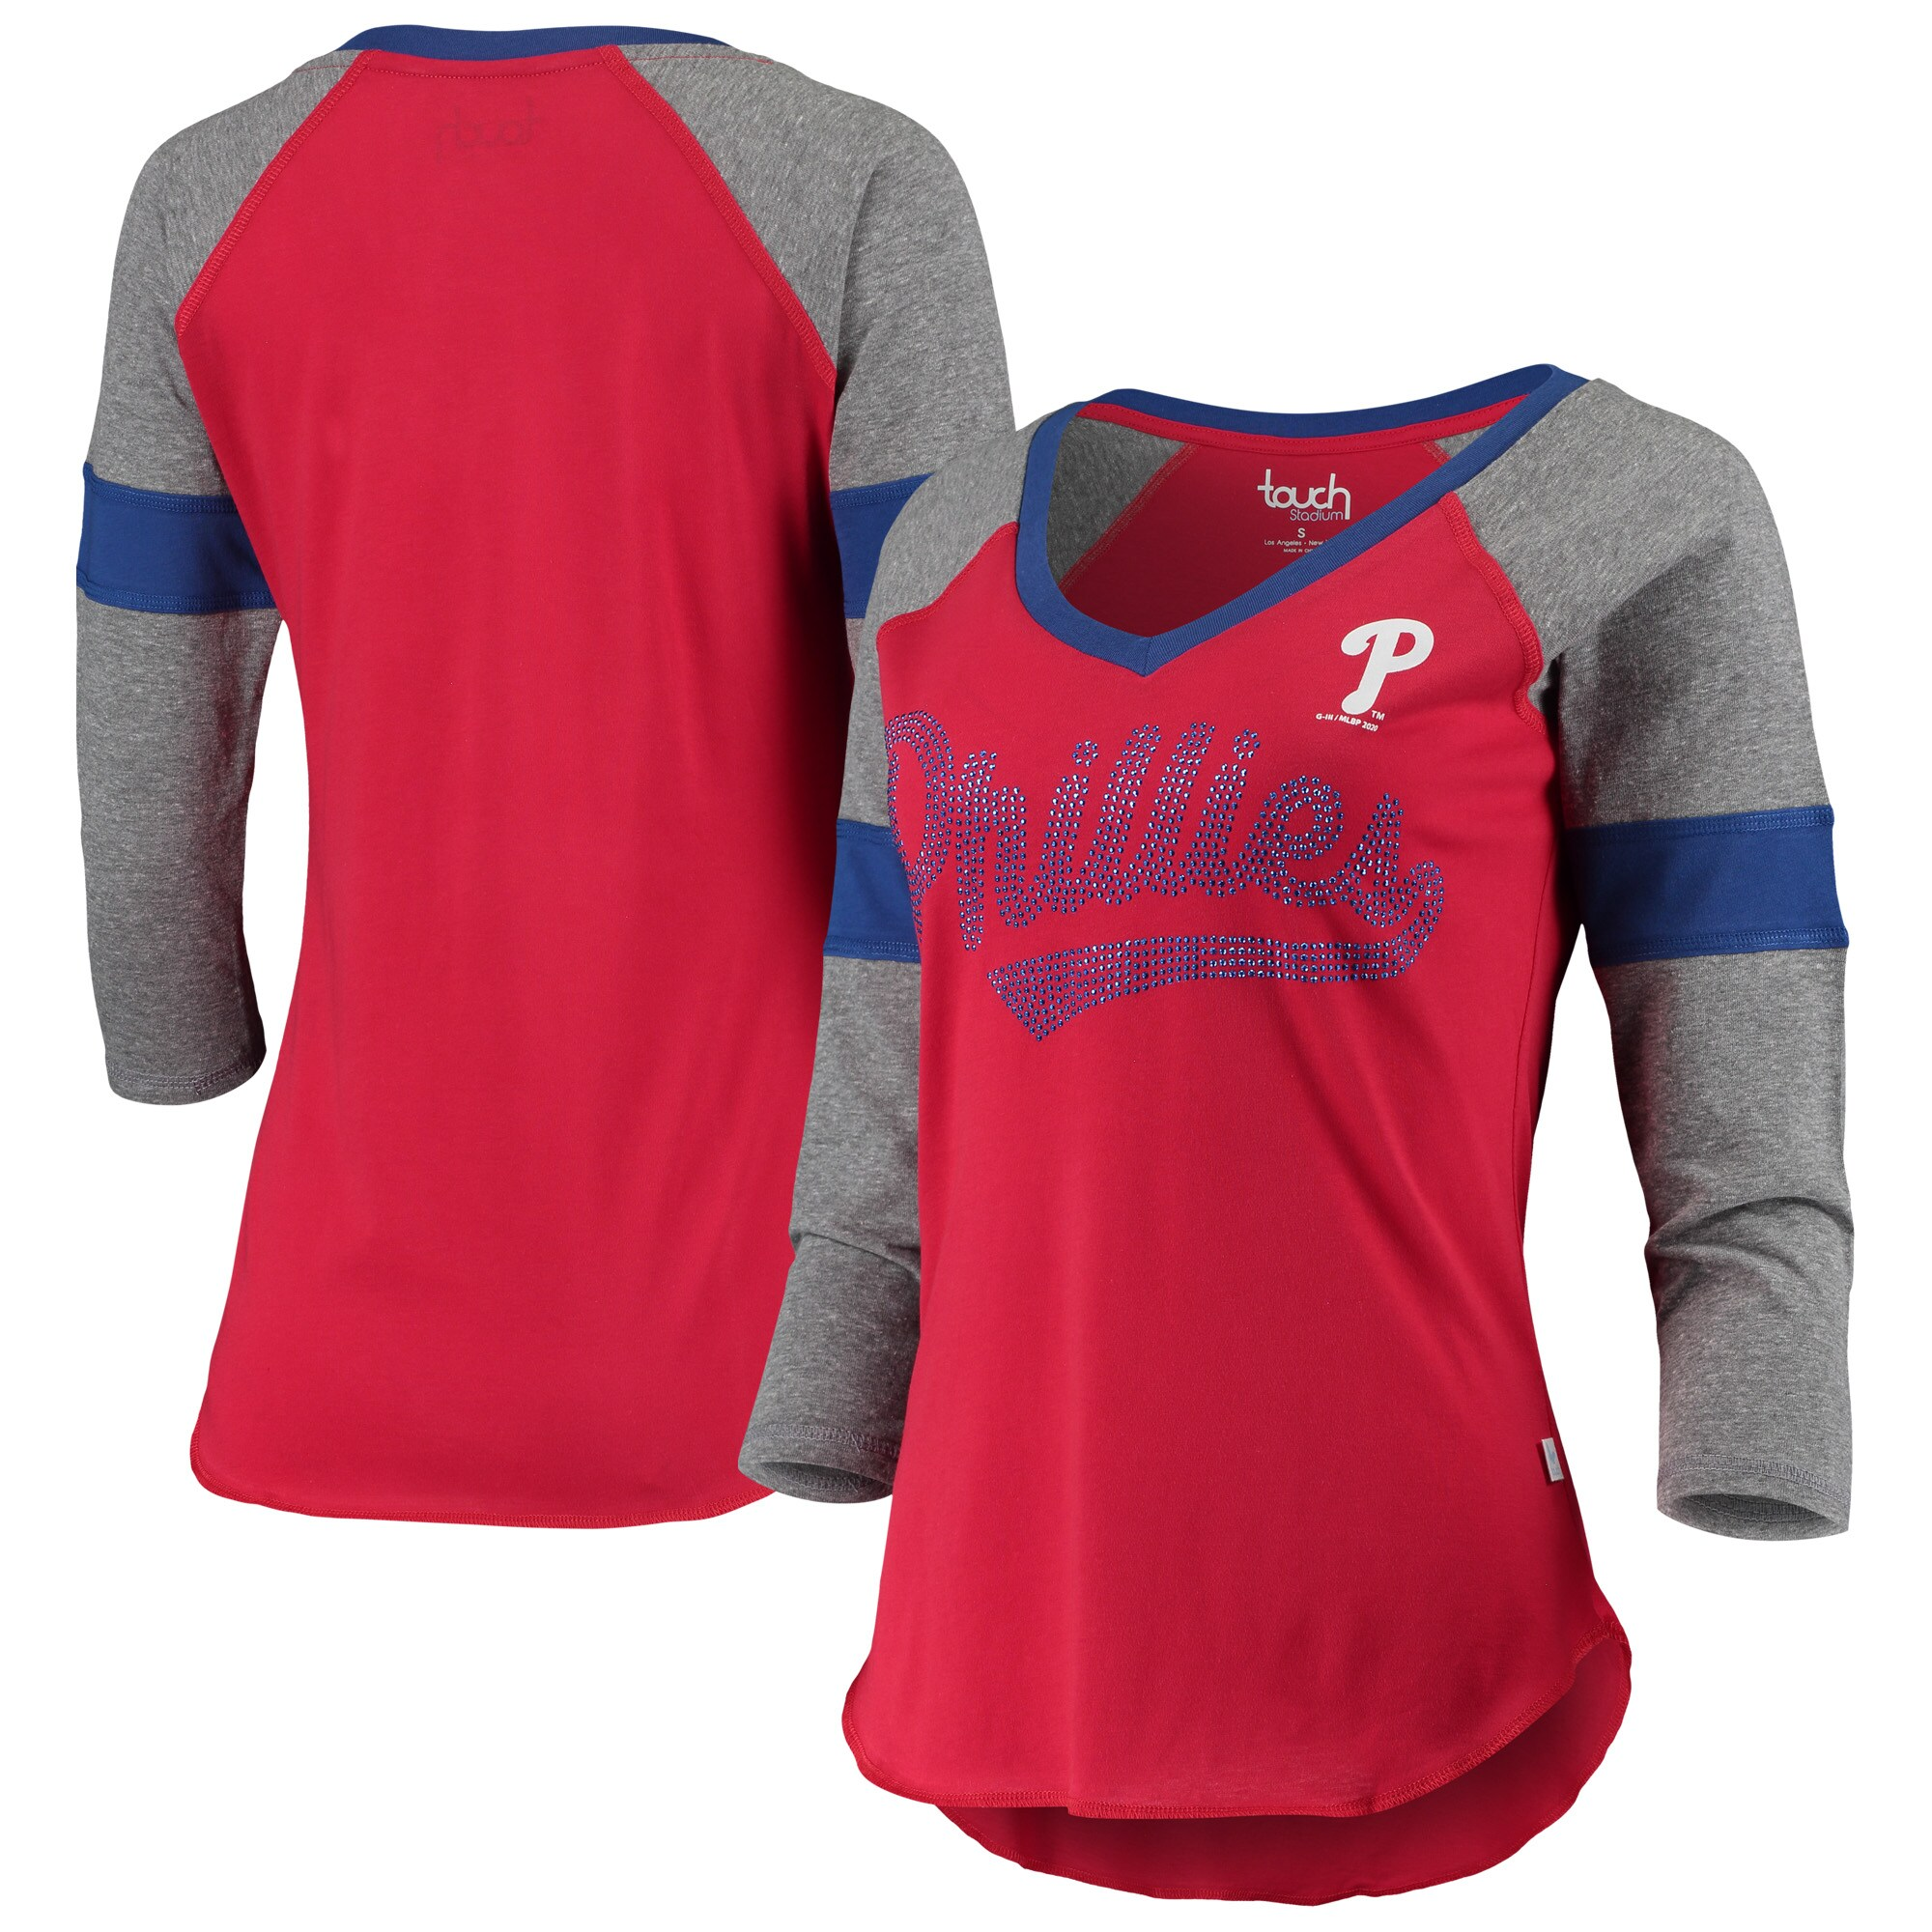 Philadelphia Phillies Touch Women's Fan for Life Raglan V-Neck 3/4-Sleeve T-Shirt - Red/Gray